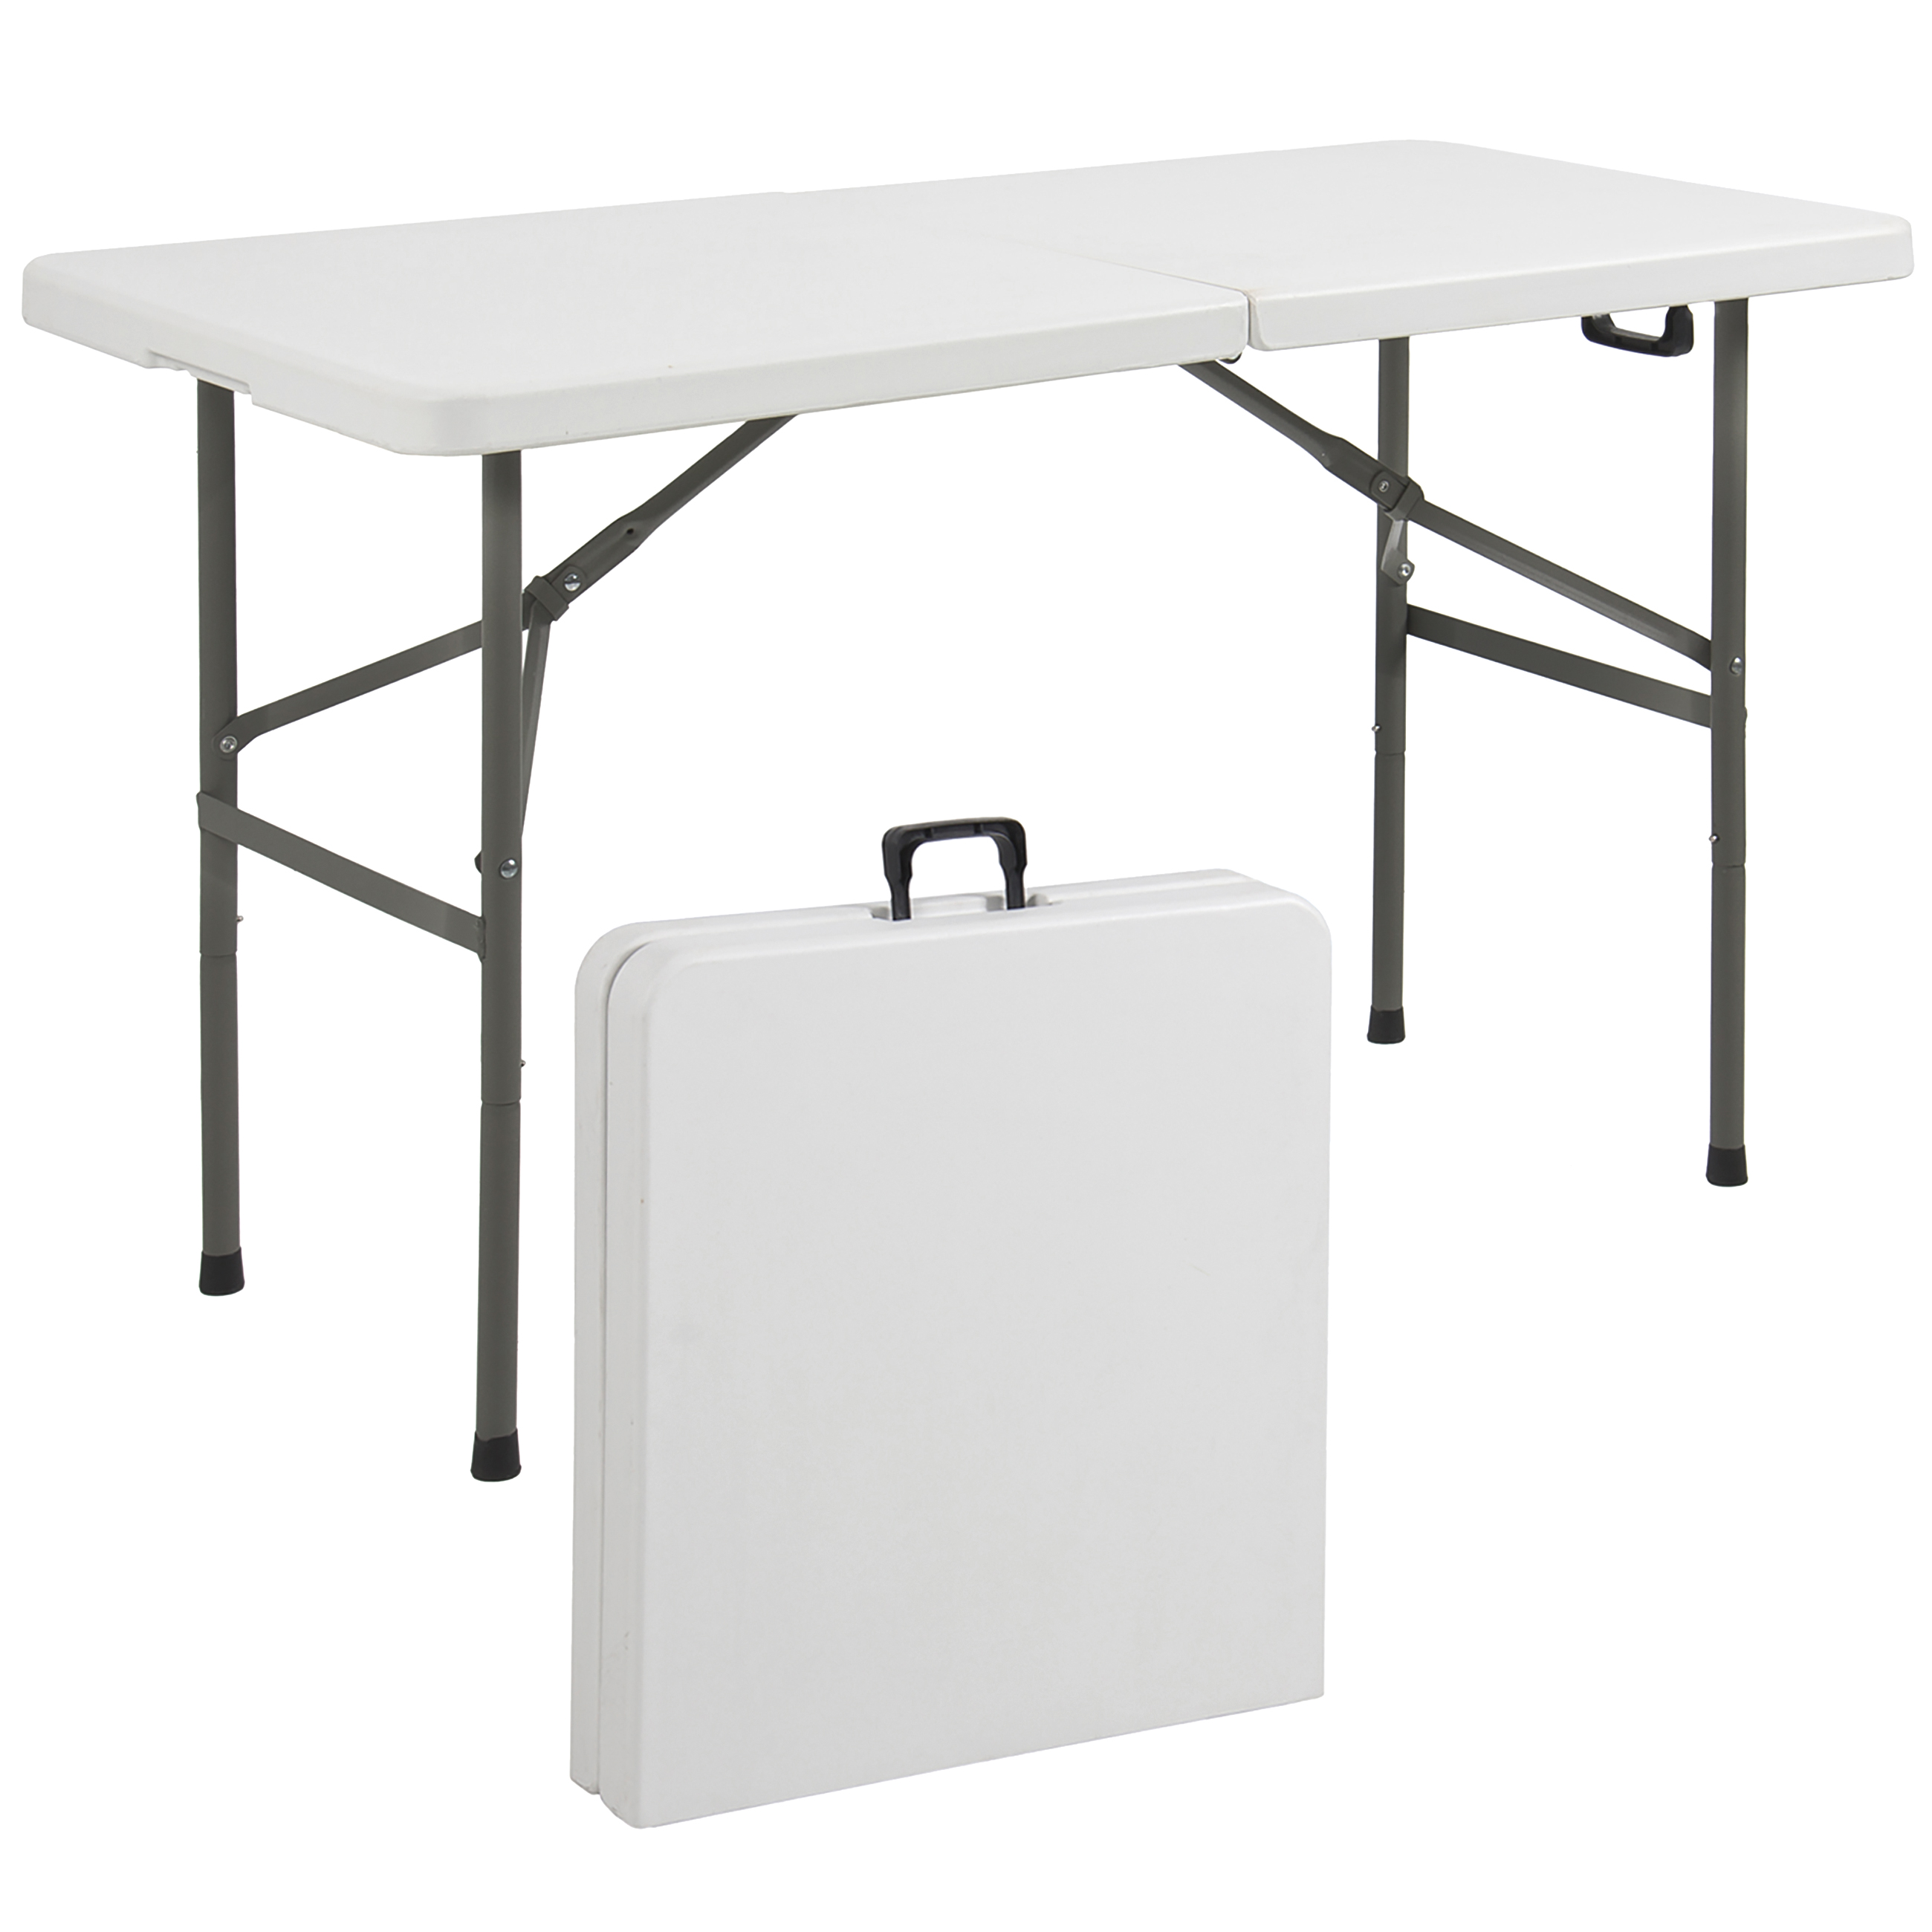 Best Choice Products 4ft Indoor Outdoor Portable Folding Plastic Dining Table For Backyard Picnic Party Camp W Handle Lock Non Slip Rubber Feet